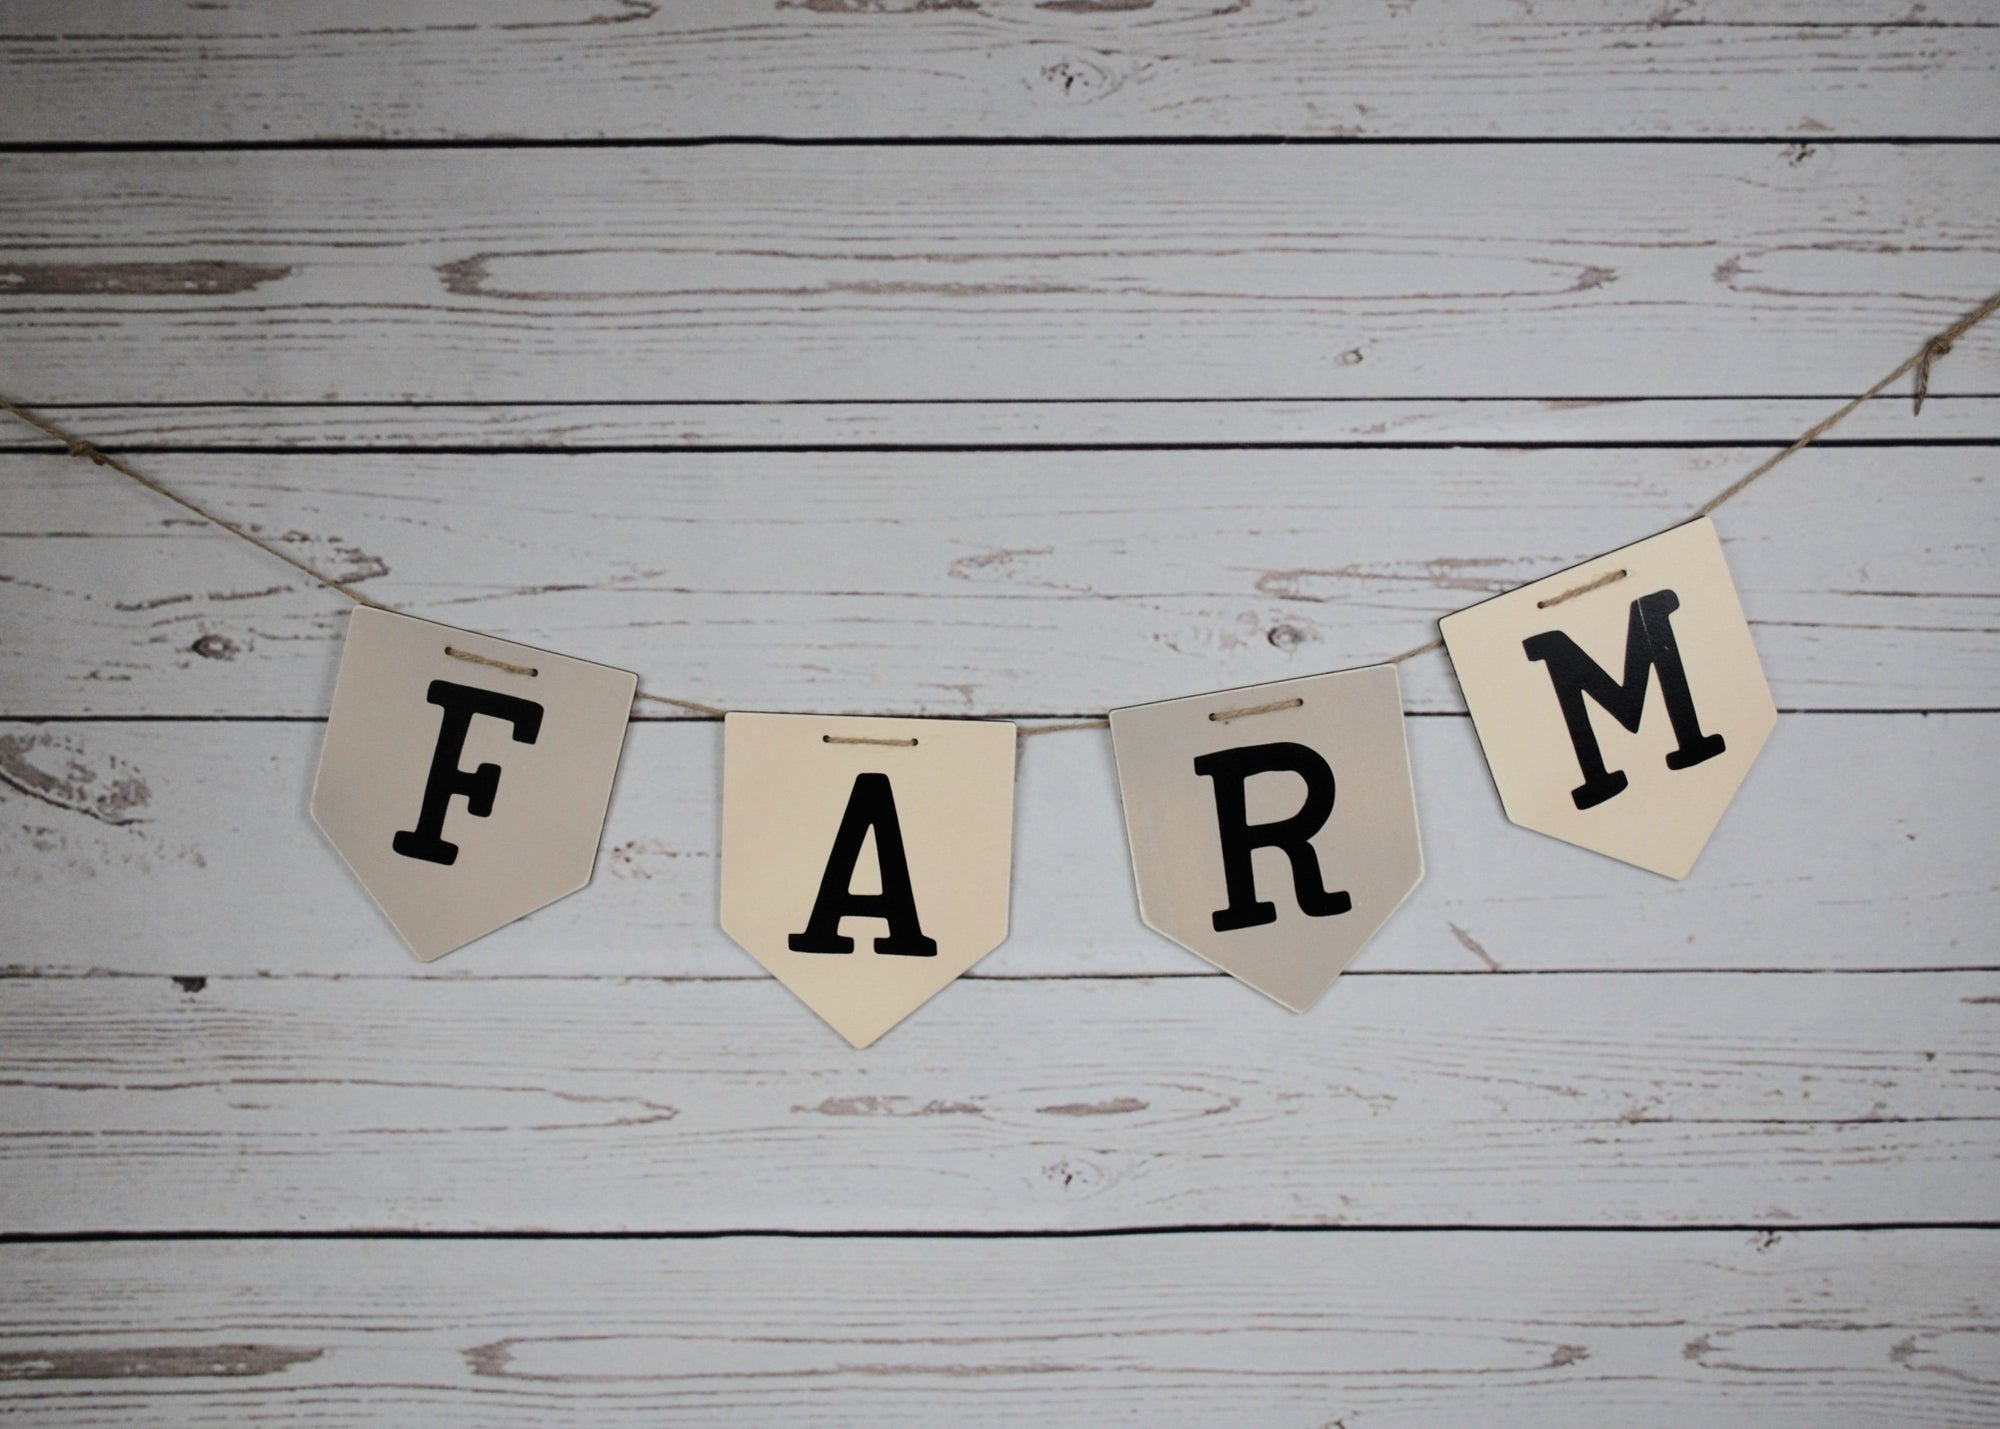 Farmhouse Decoration, Farm Decor, Rustic Garland, Farm Signs, Farmhouse Style, Fixer Upper Style, Country Home Decor, Garland for Mantle